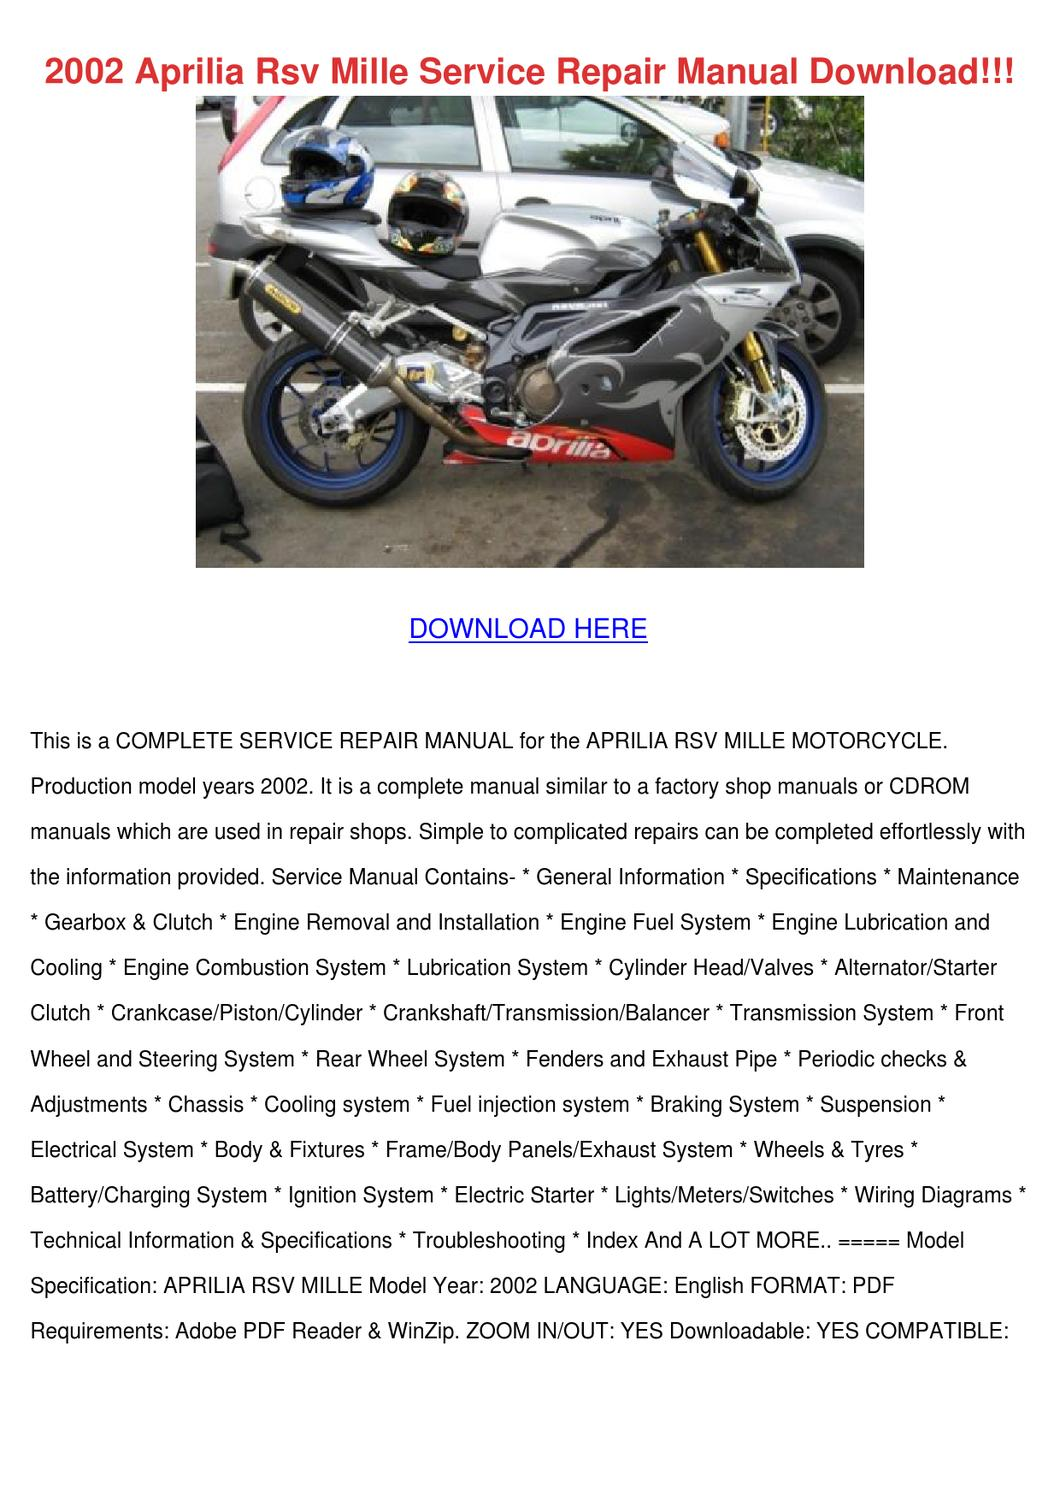 Aprilia Rsv Mille Wiring Diagram Simple Electrical Schematics 2002 Service Repair Manual By Hassanfortin Issuu R